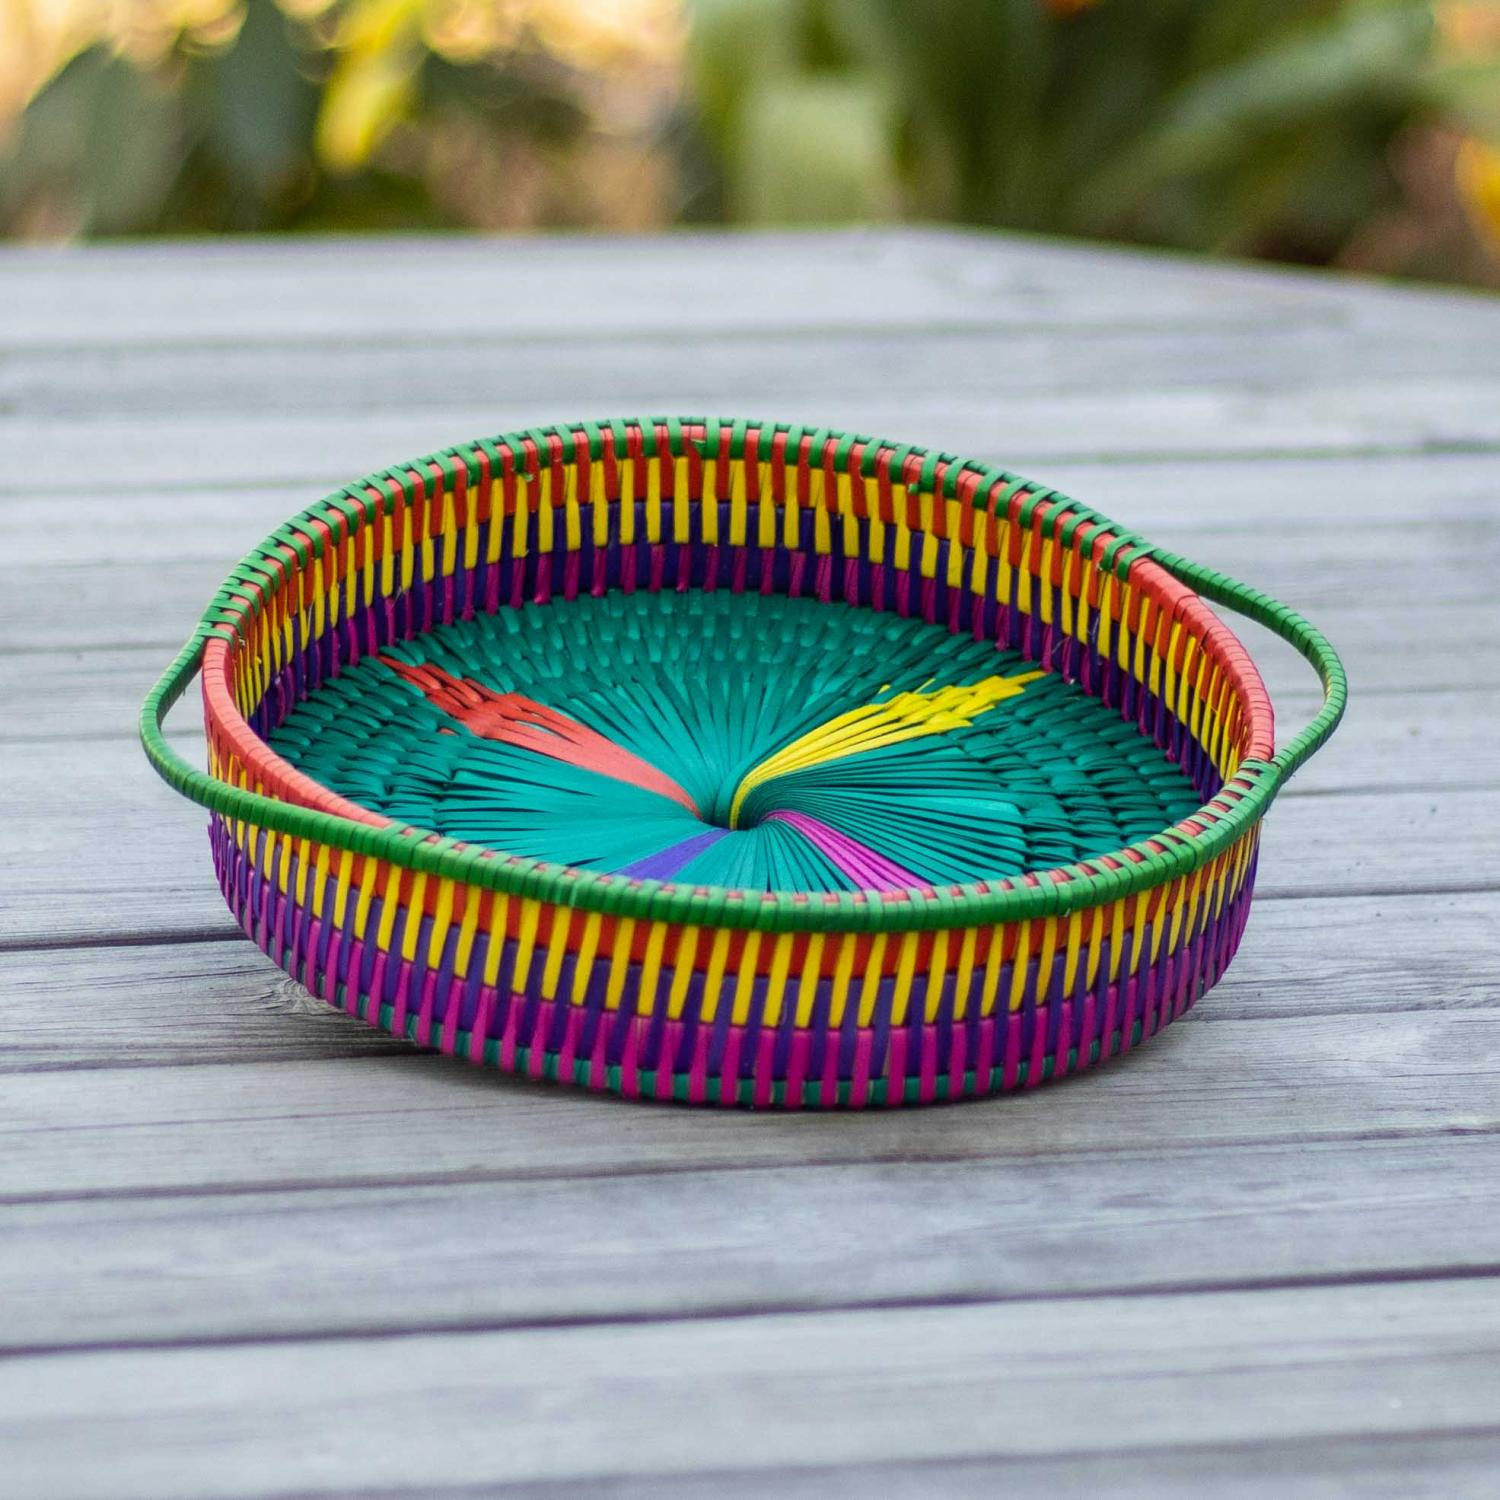 Palm leaf tray in rainbow colors and green handle